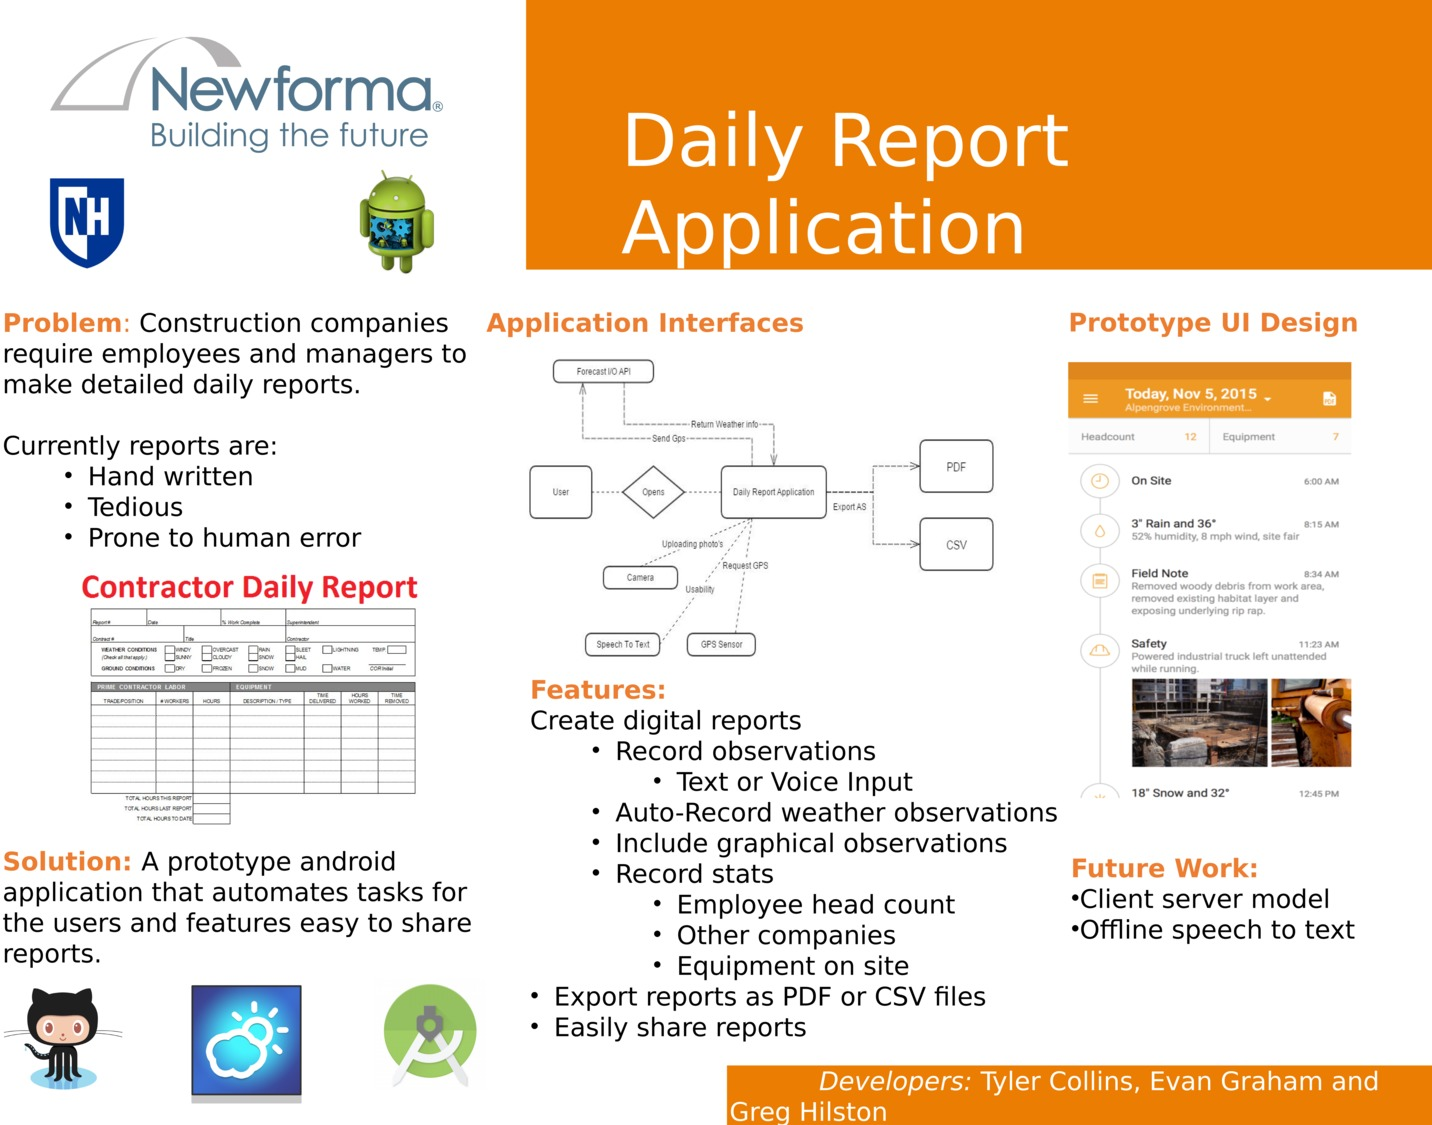 Newsroom Daily Report by ejo78